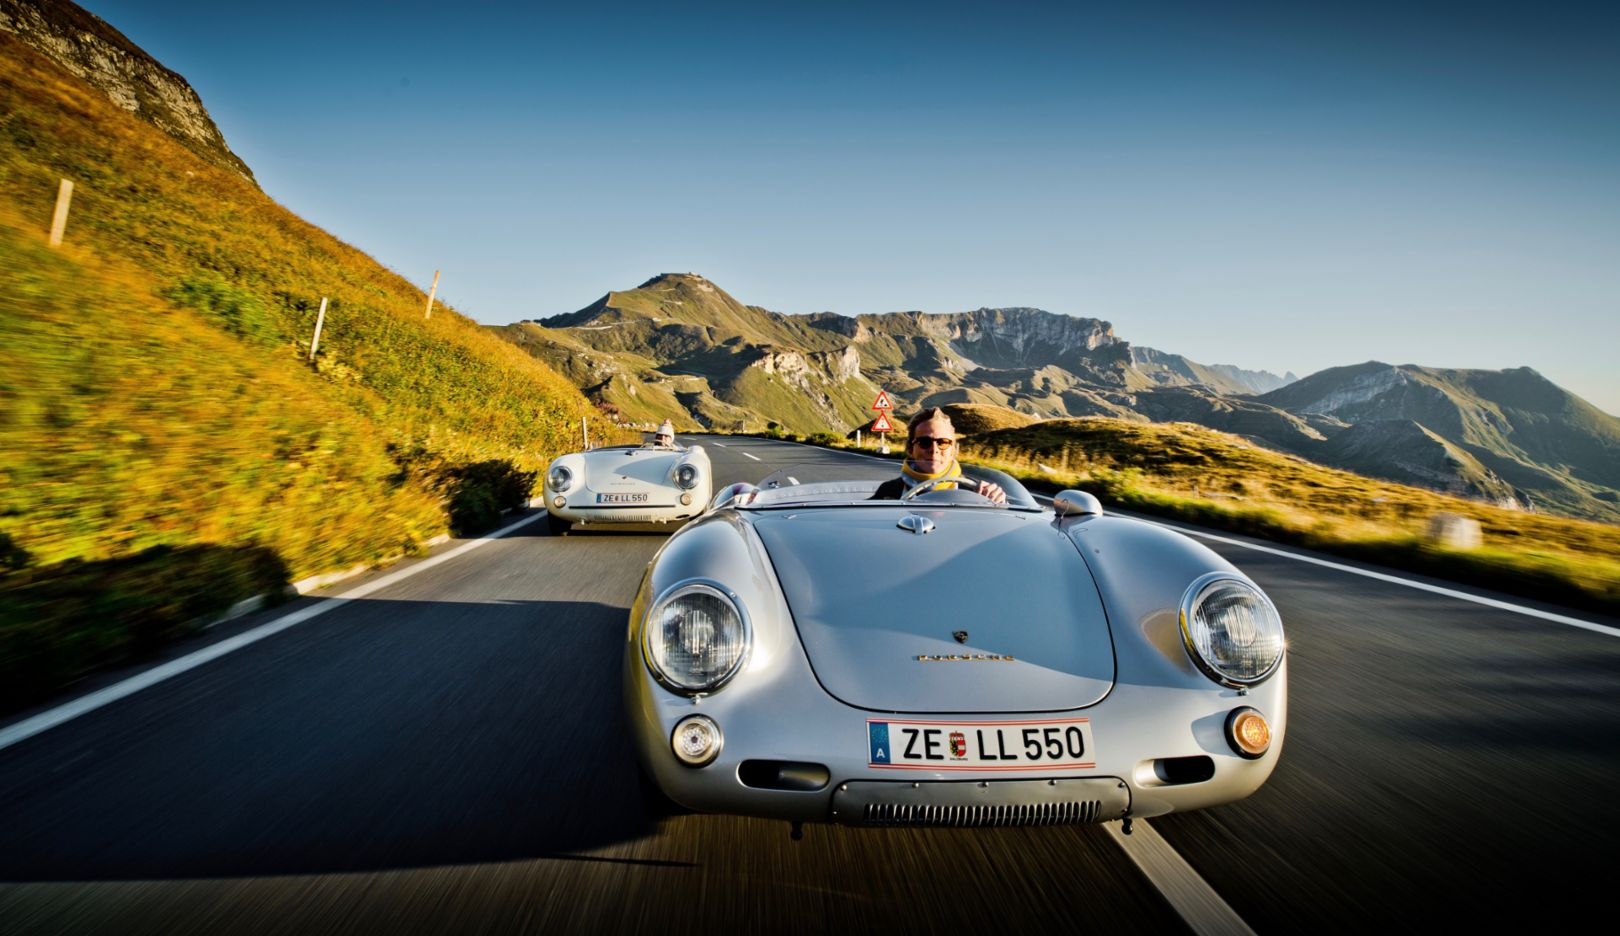 "Ferdinand ""Ferdi"" Porsche is developing from a city dweller to a nature lover. A down-to-earth attitude is an important value that is shared by both father and son."